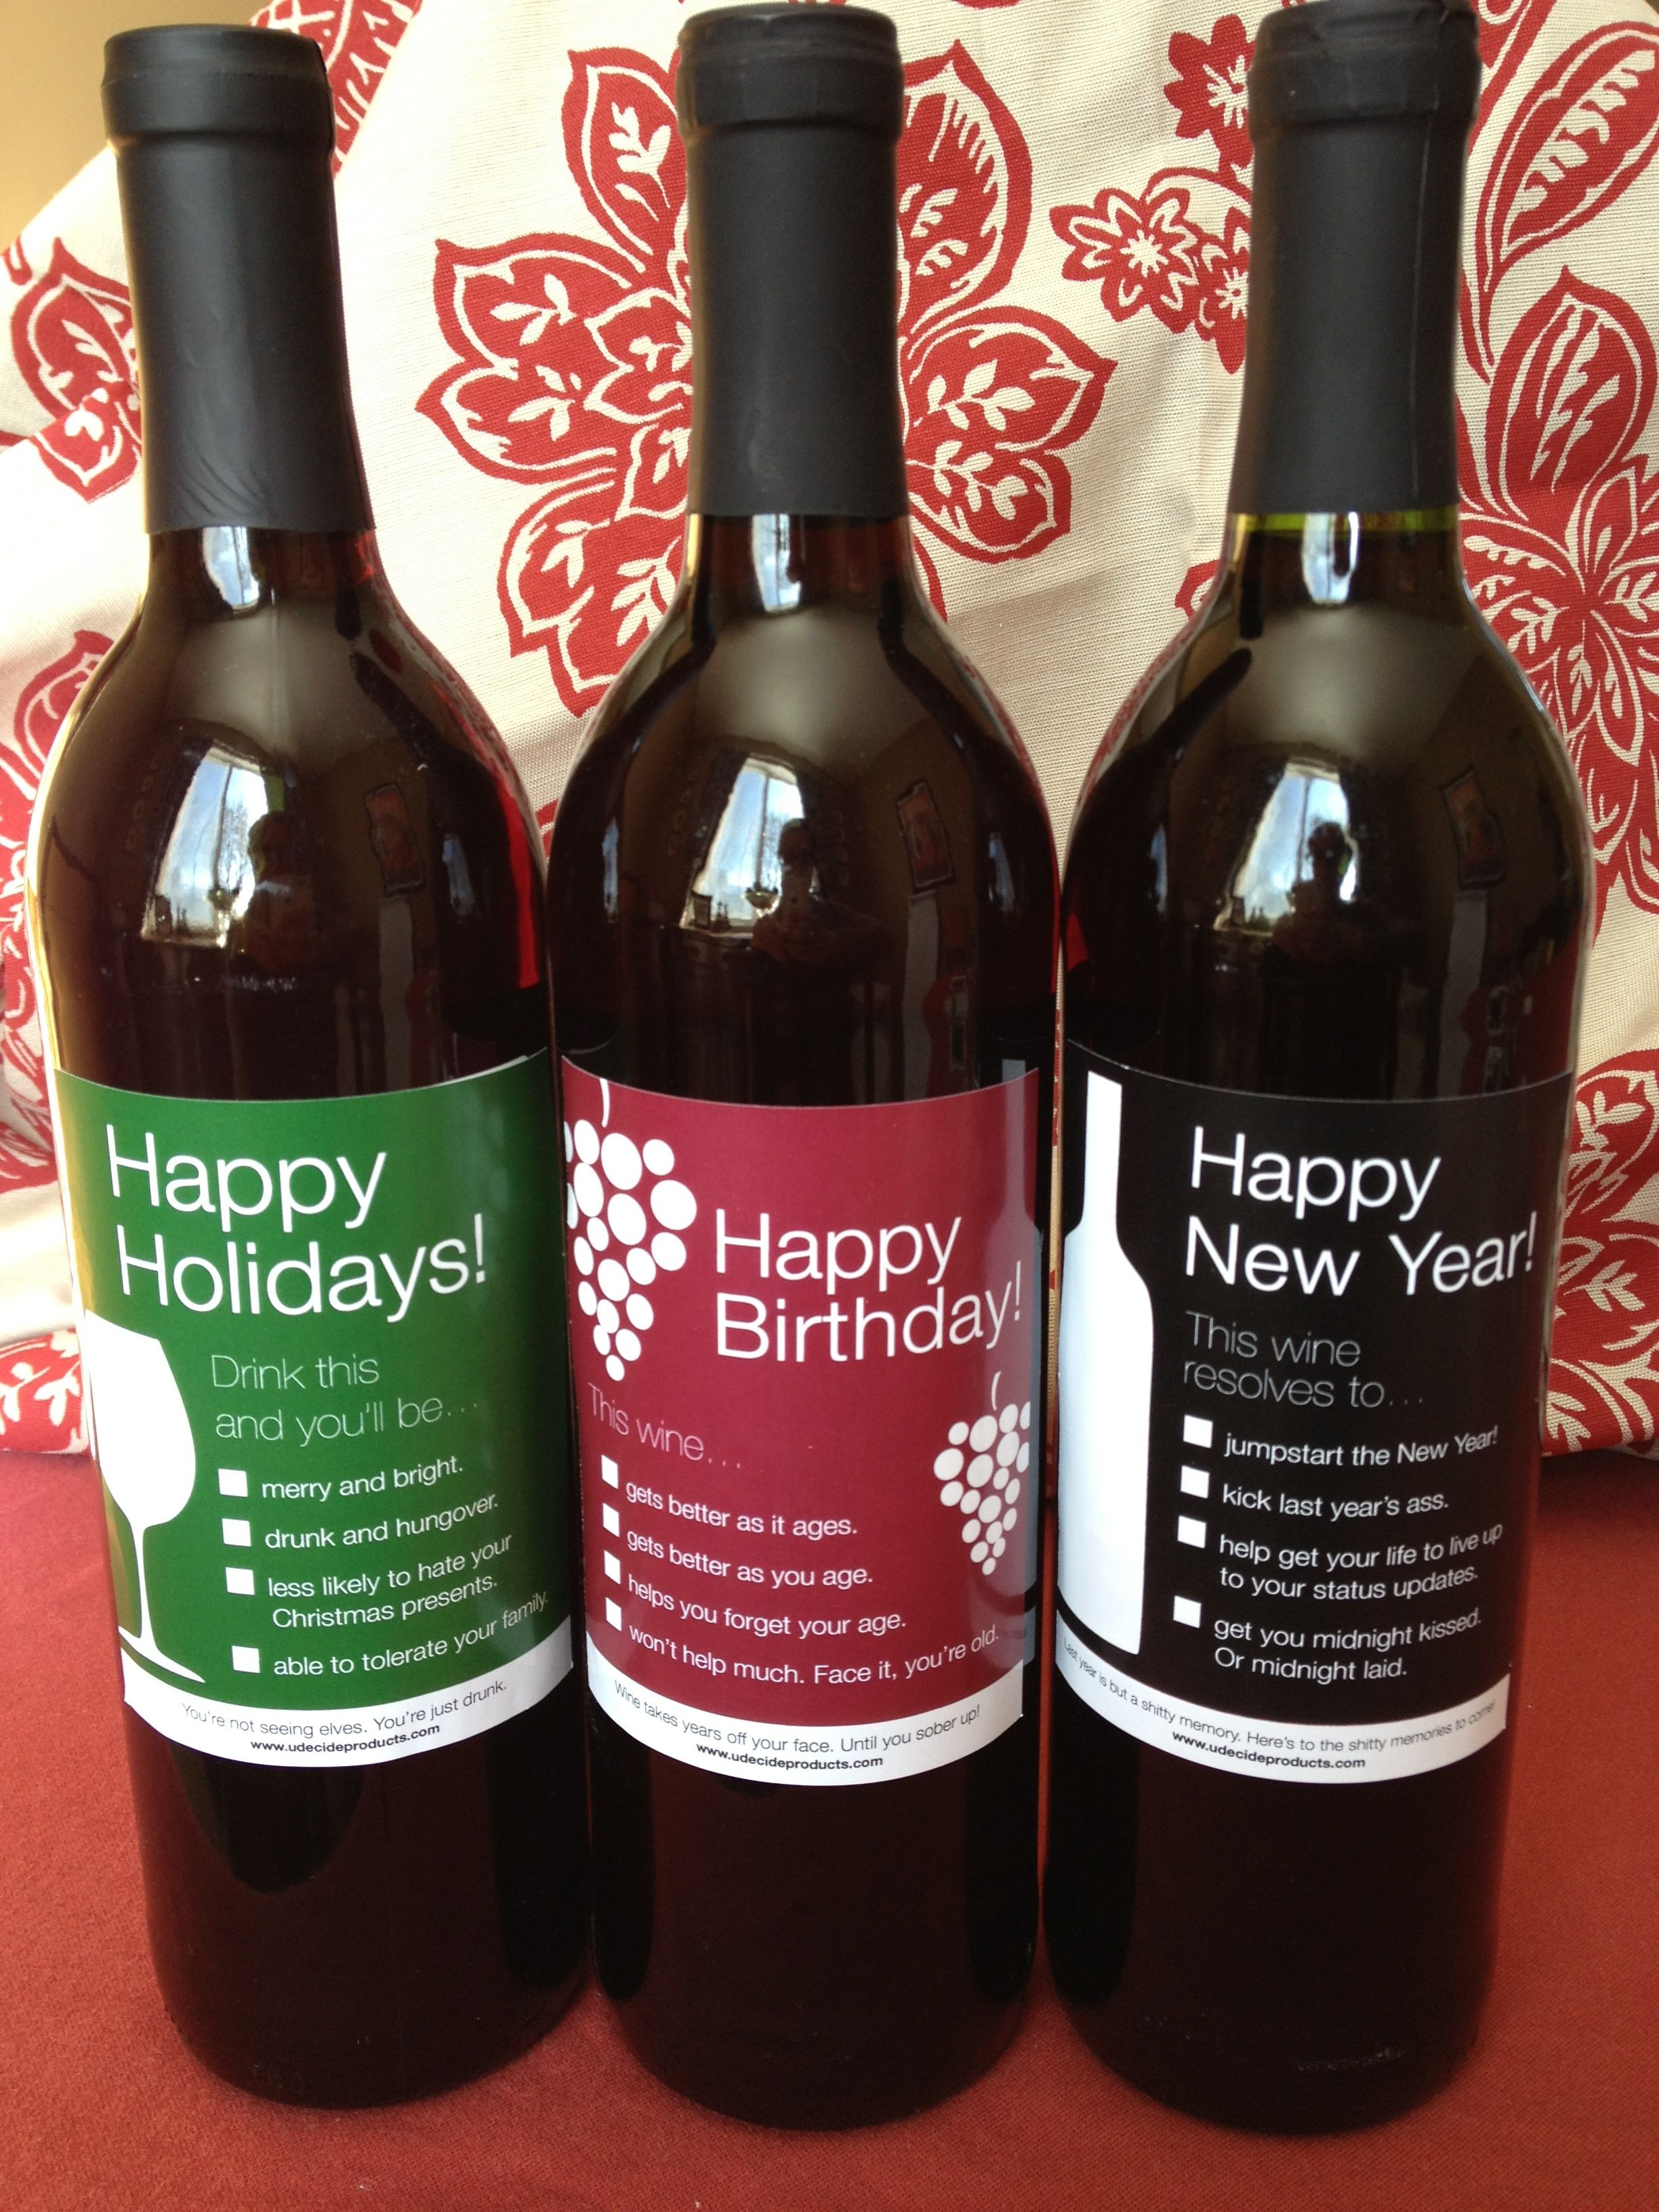 Udecideproducts Funny Wine Bottles Funny Wine Bottle Labels Holiday Wine Bottle Labels